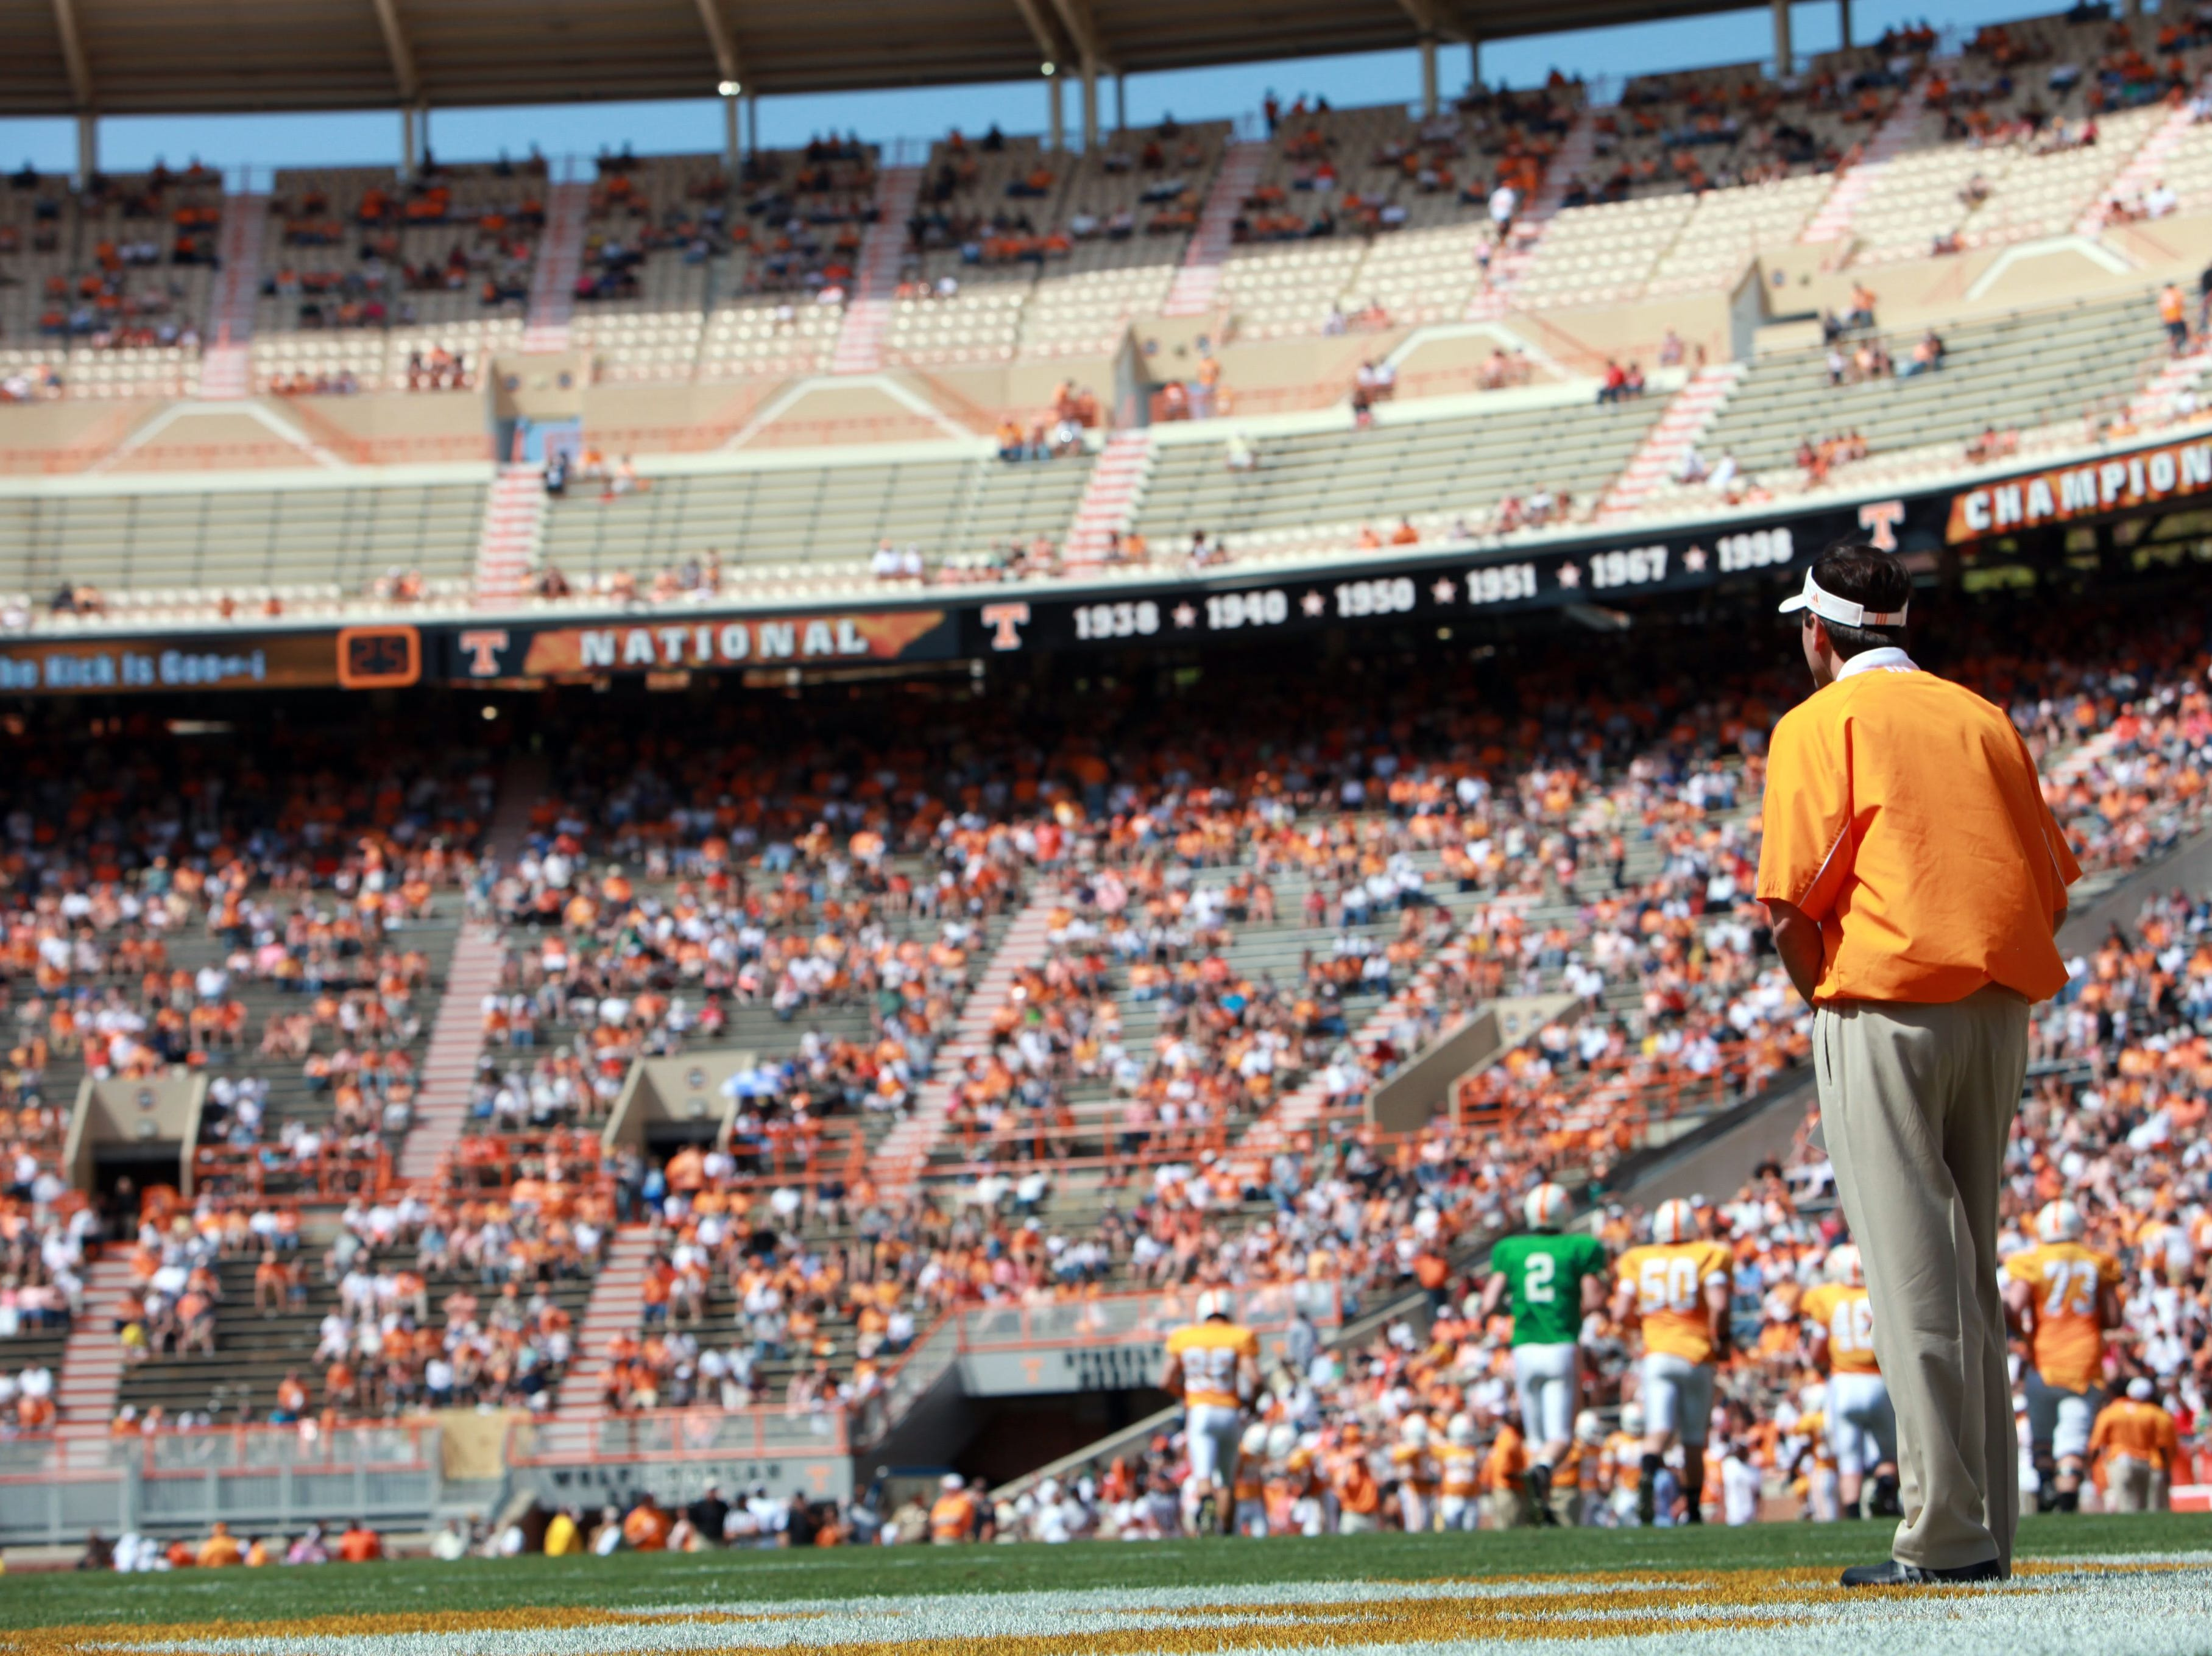 In this photo taken on Saturday, April 17, 2010, Tennessee head coach Derek Dooley looks on after a field goal during the Orange and White spring college football game at Neyland Stadium in Knoxville, Tenn.